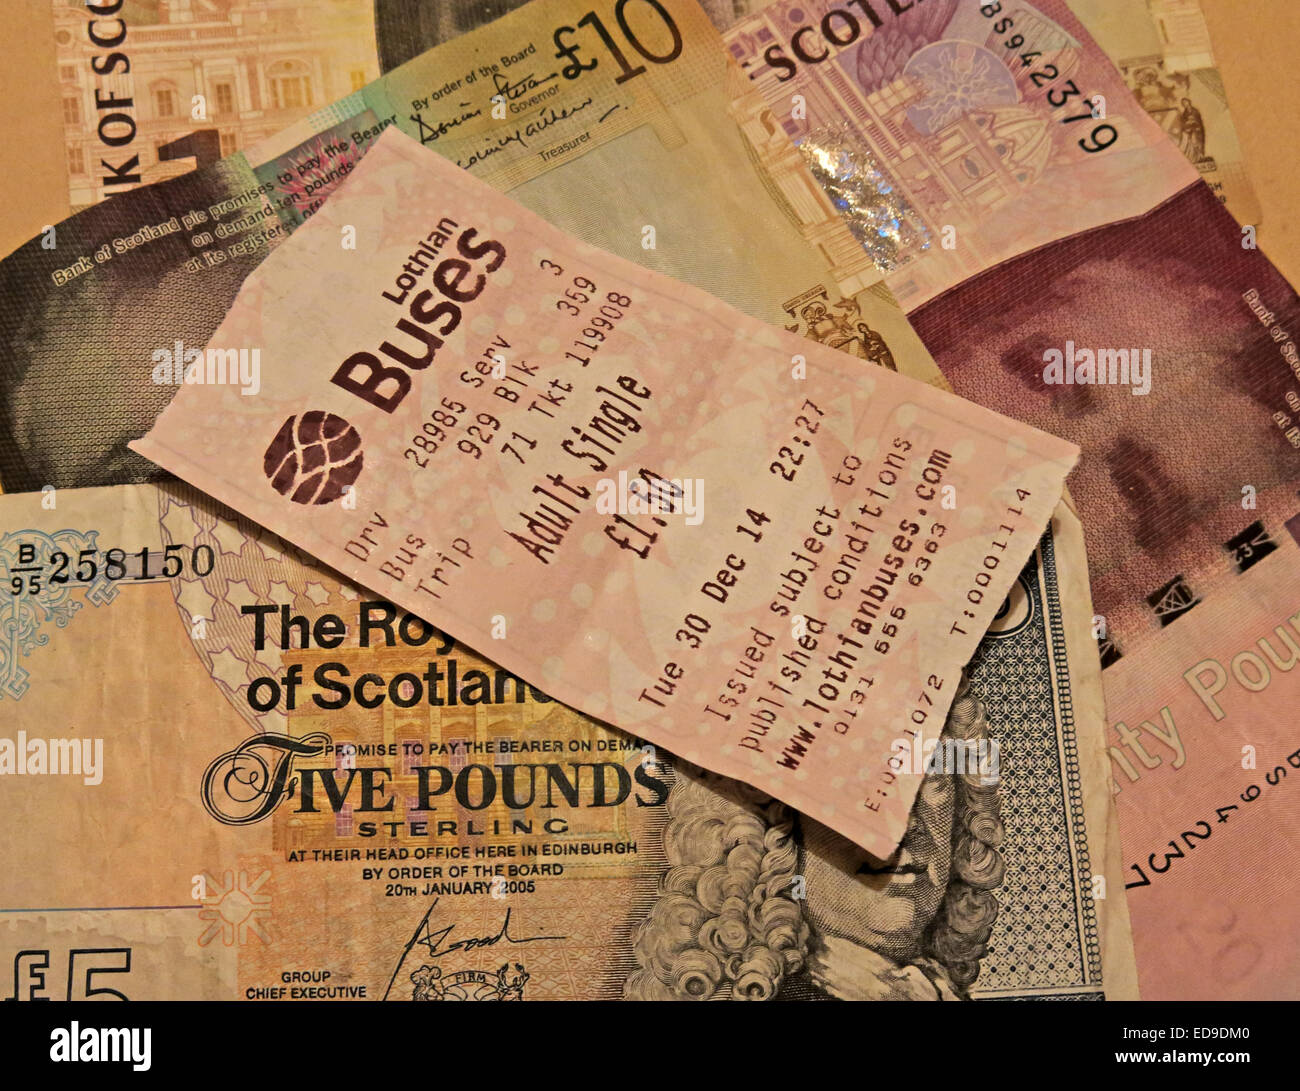 Scottish,Money,Cash,Sterling,currency,cost,of,travel,travelcard,transport,buspass,pass,paper,EDN,Edinburgh,Scotland,UK,united,kingdom,GB,Great,Britain,largest,municipal,services,City,of,Council,Adult,single,3,three,£1.50,150,1.50,five,pound,pounds,ten,10,5,GoTonySmith,Gorebridge,Mayfield,Clovenstone,worker,expenses,budget,weekly,outgoings,outgoing,on,its,side,sideways,Buy Pictures of,Buy Images Of